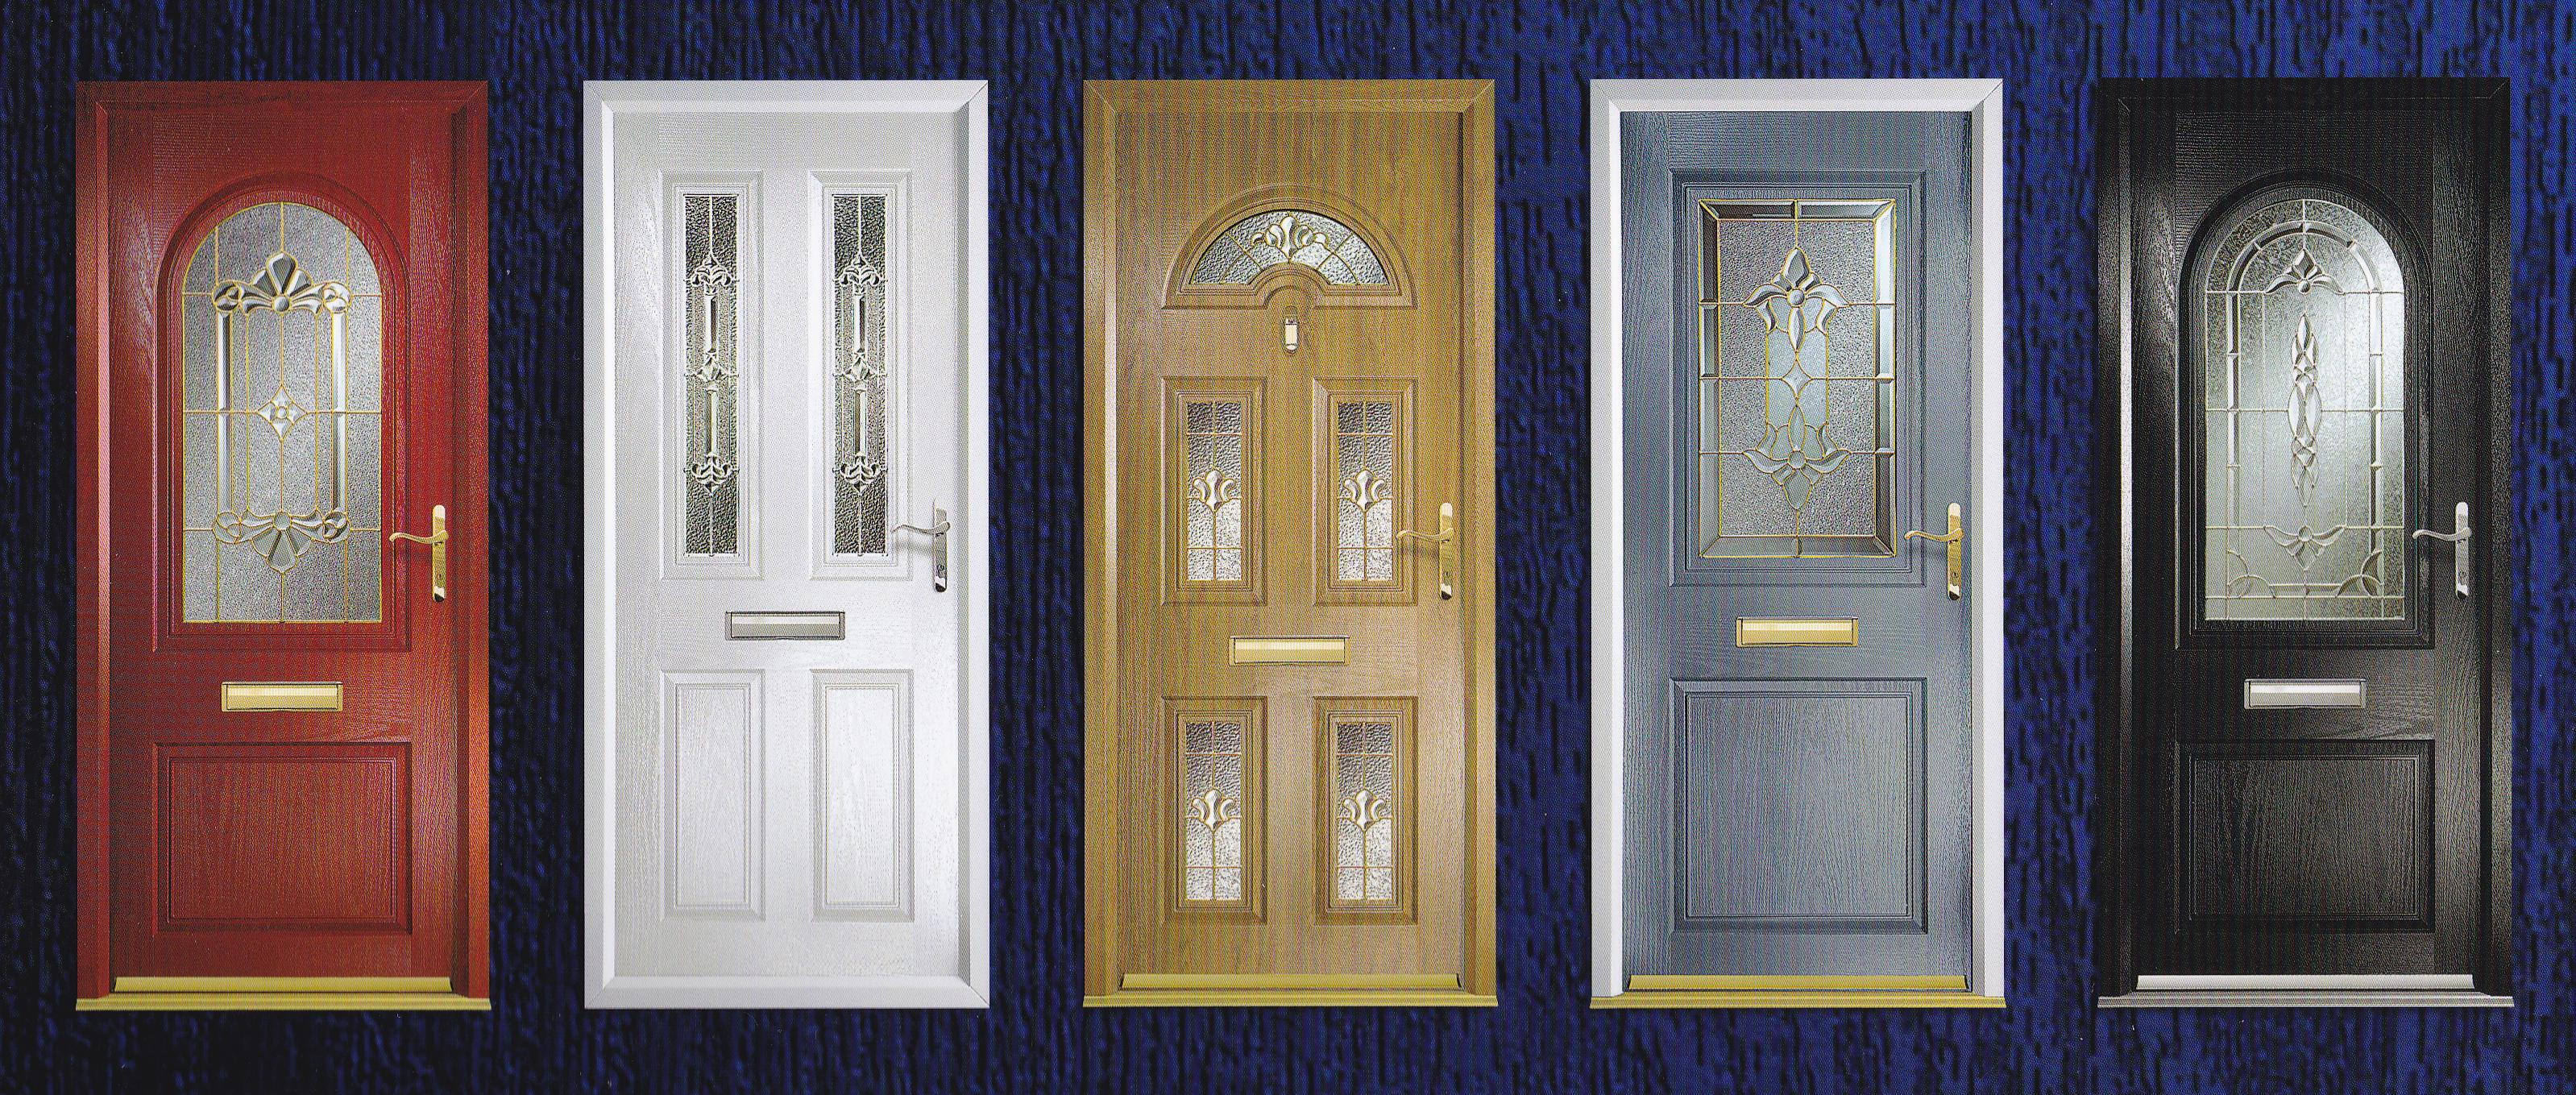 Choose the best door and window design for your home all for All about doors and windows